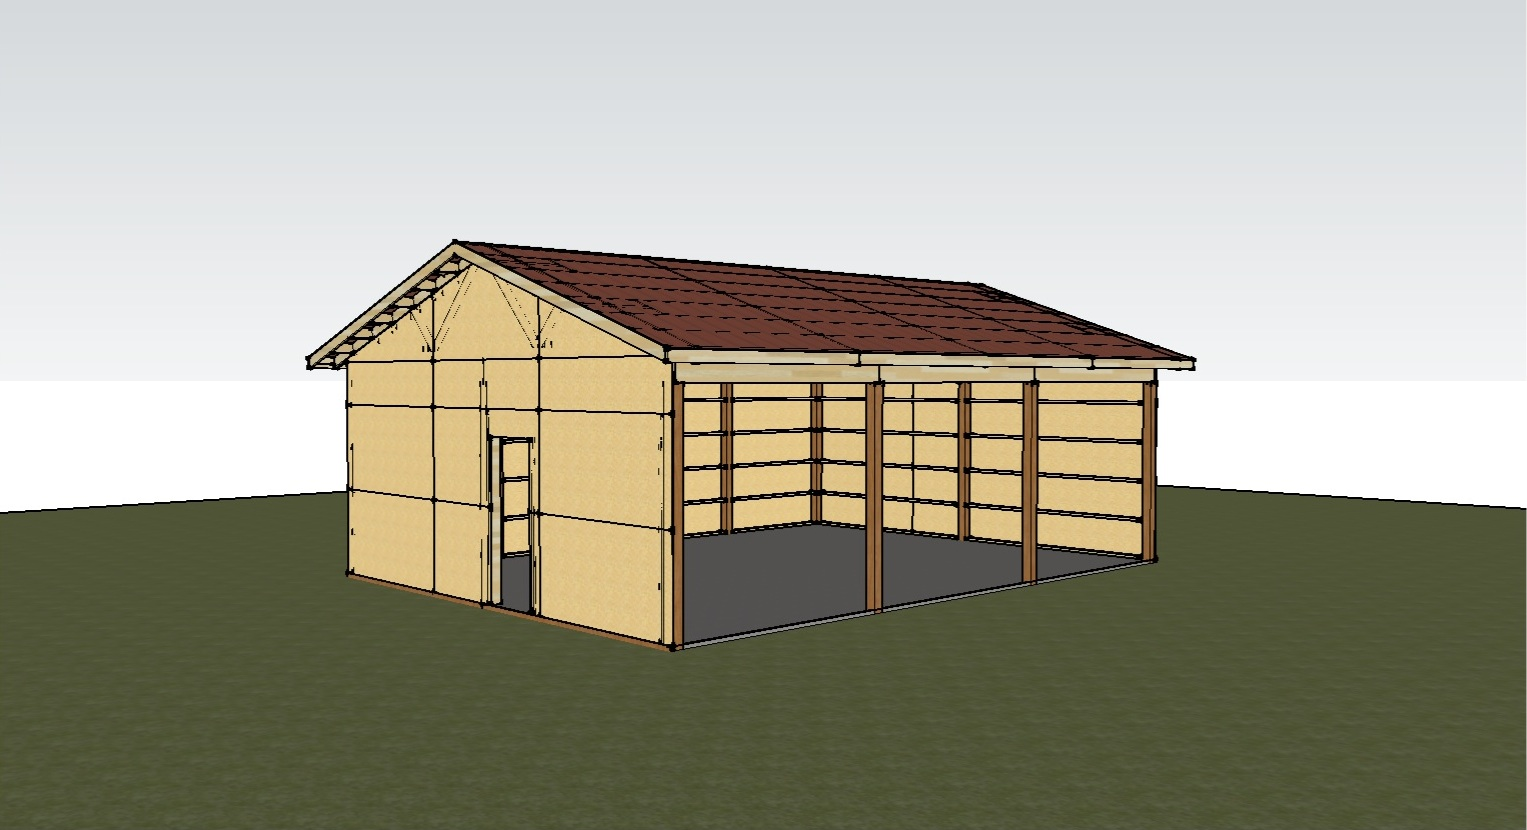 Pole barn plan joy studio design gallery best design for Pole barn house design